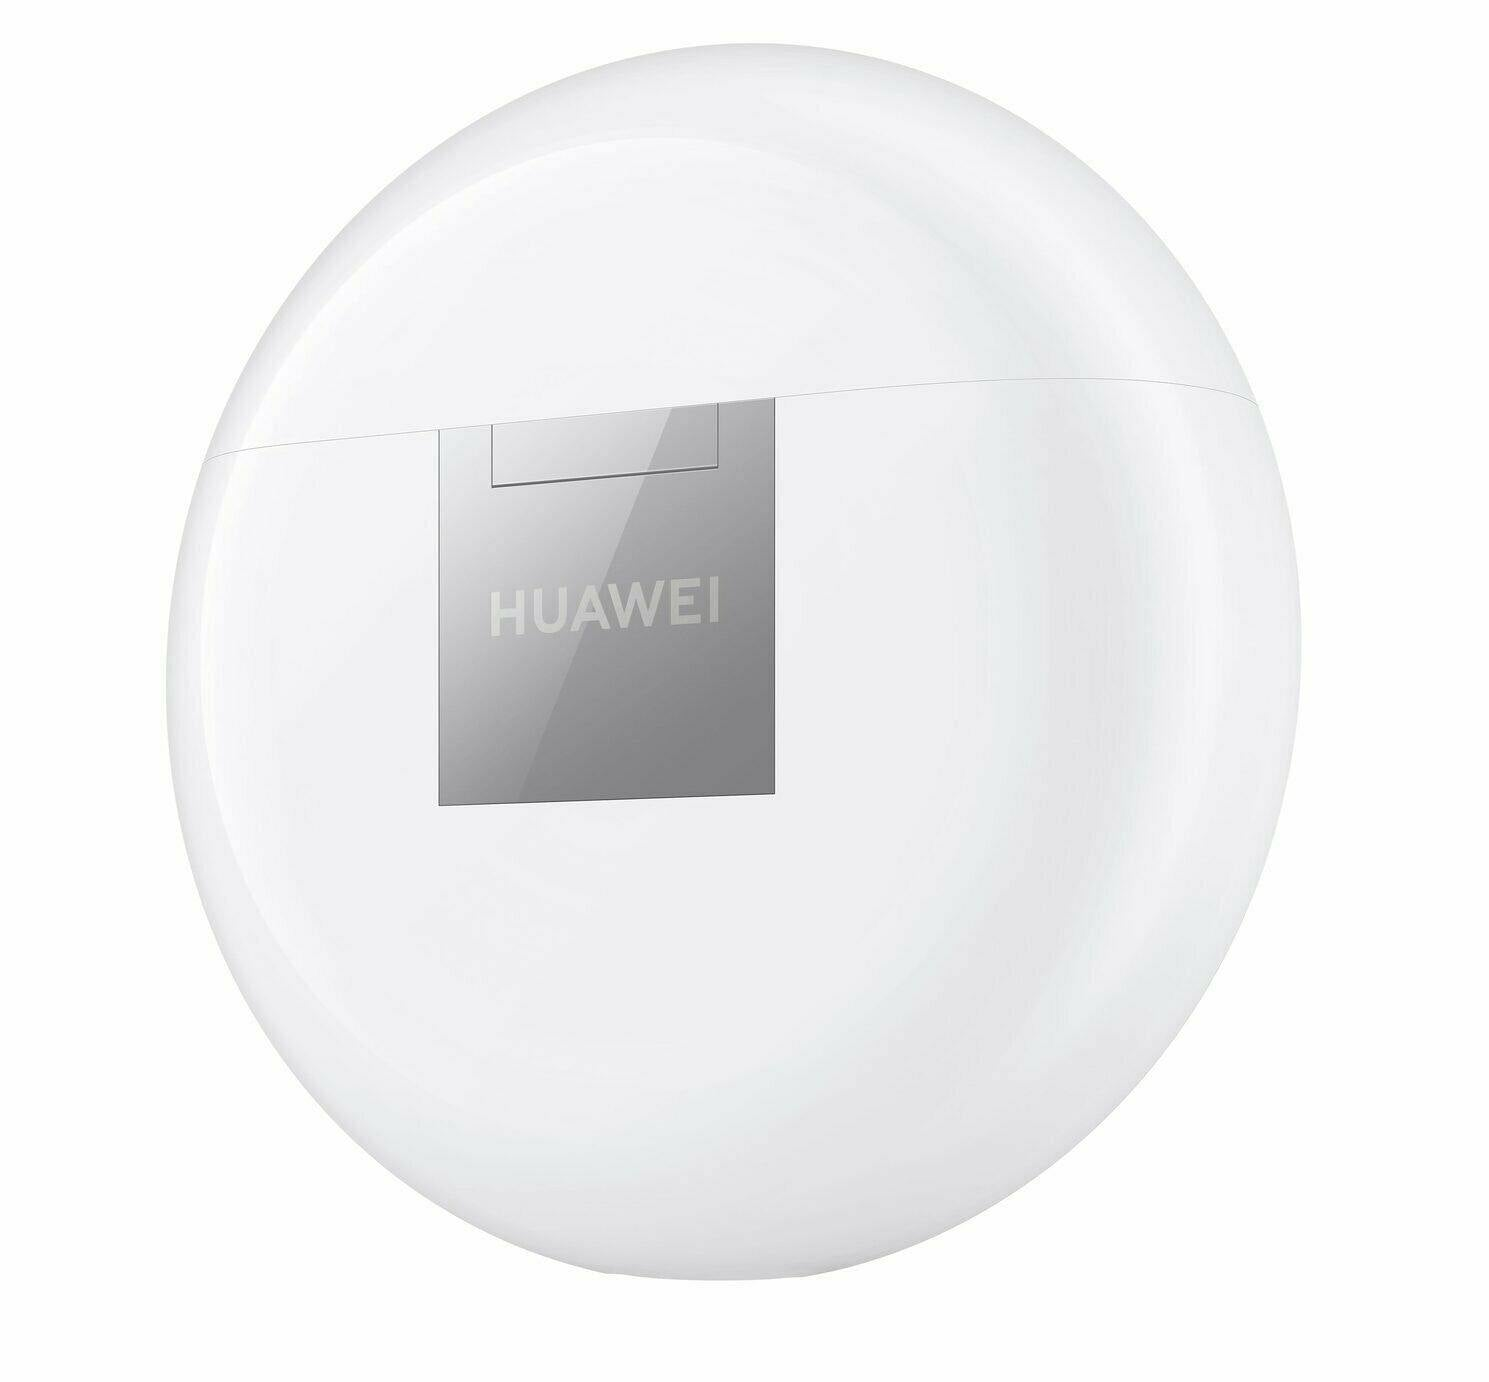 Official Huawei FreeBuds 3 Wireless Bluetooth Earphone with Intelligent Noise Cancellation White 55031990